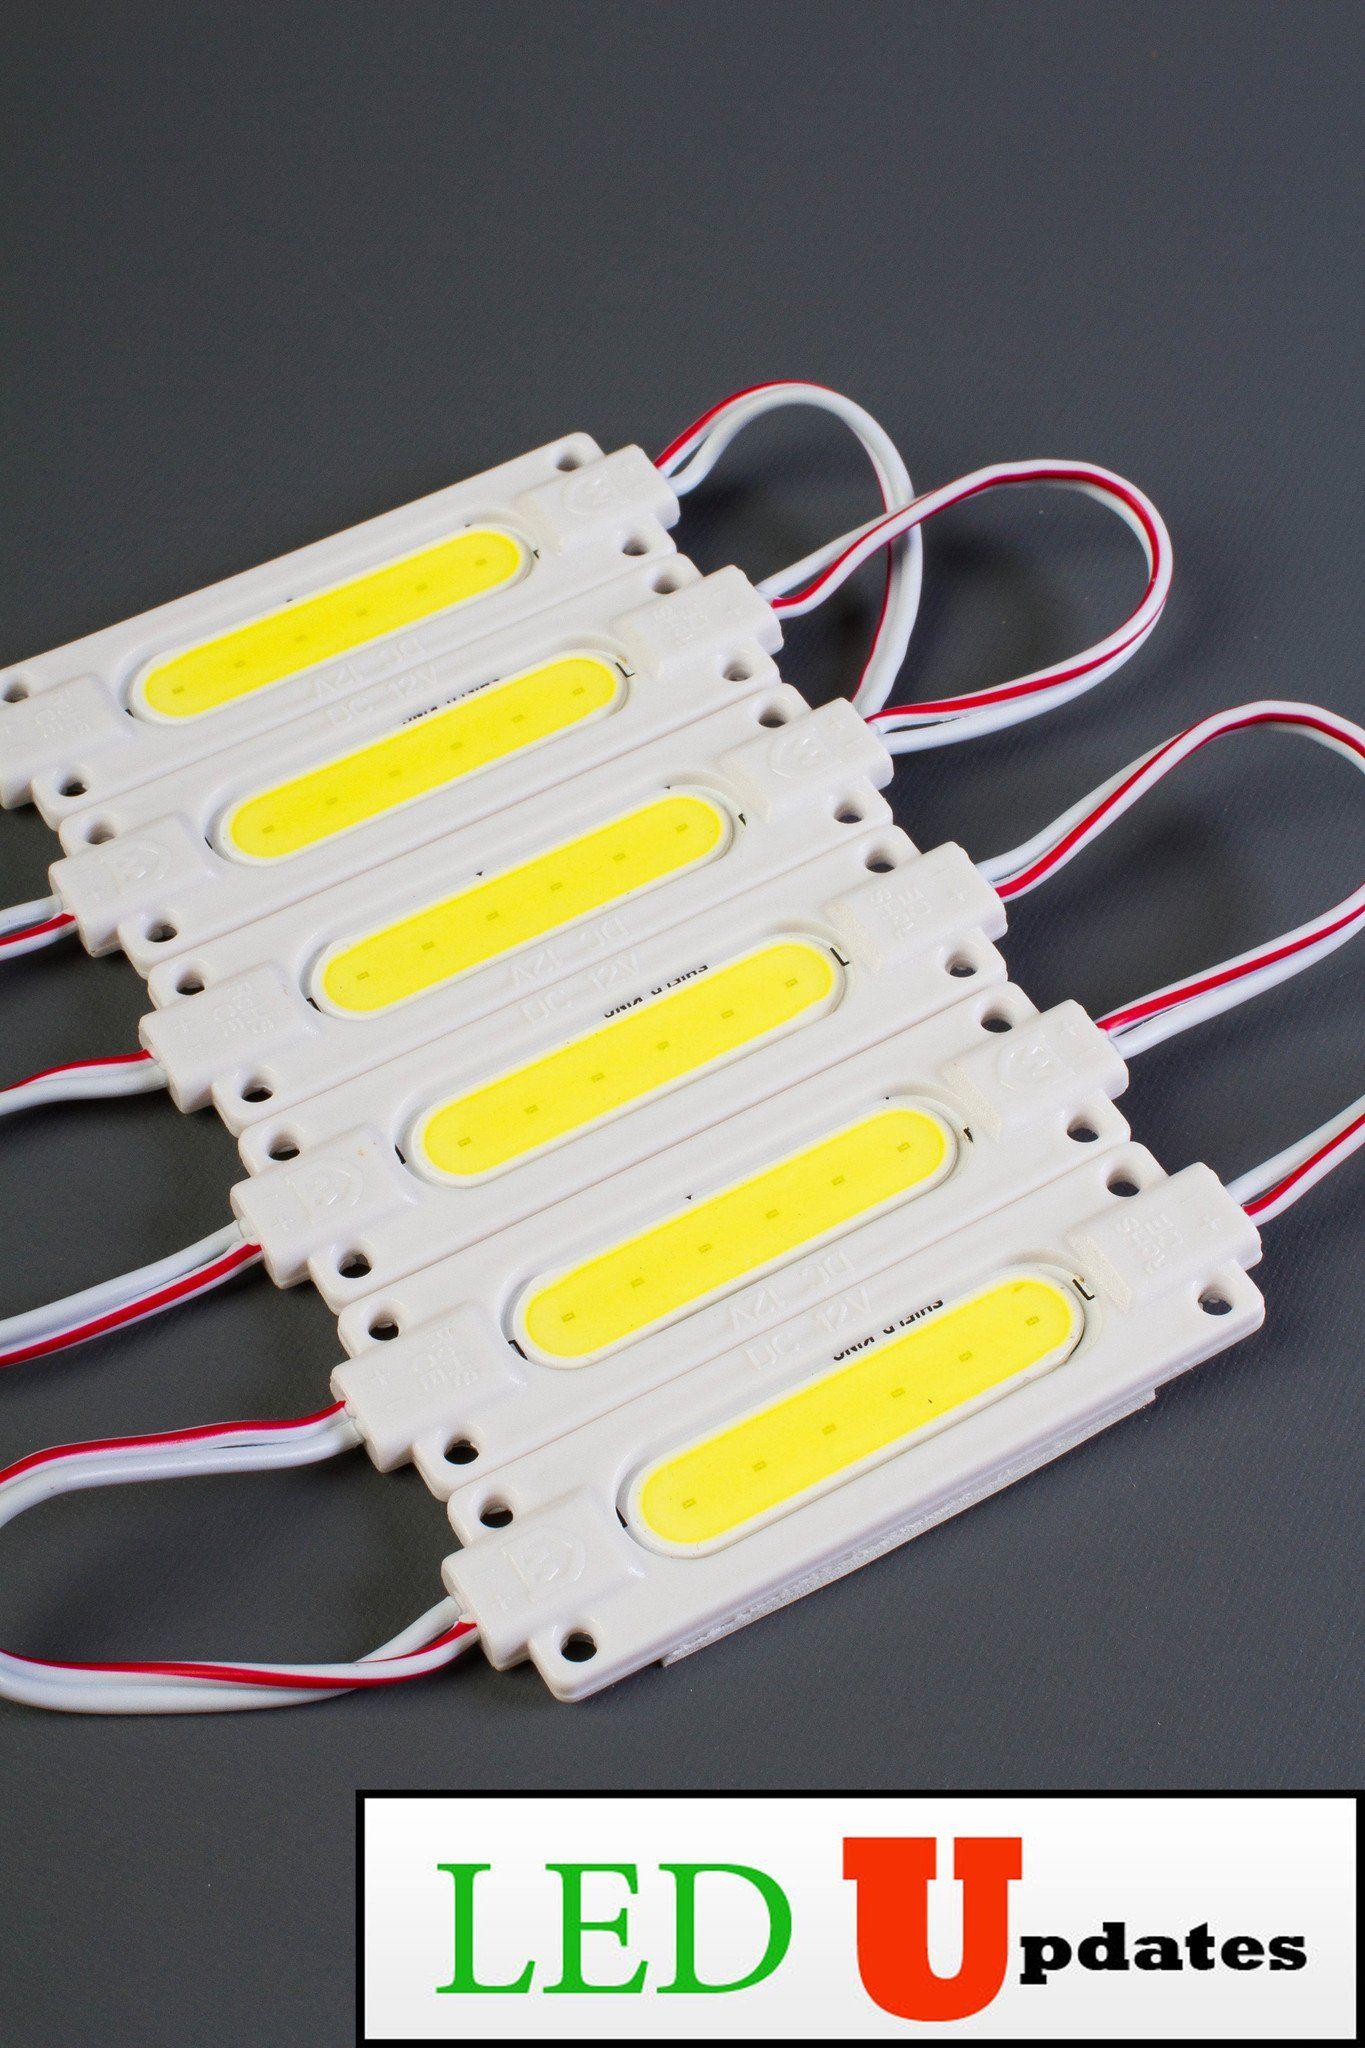 White Ultra Cob Series Led Light Modules Led Lights Led Led Strip Lighting